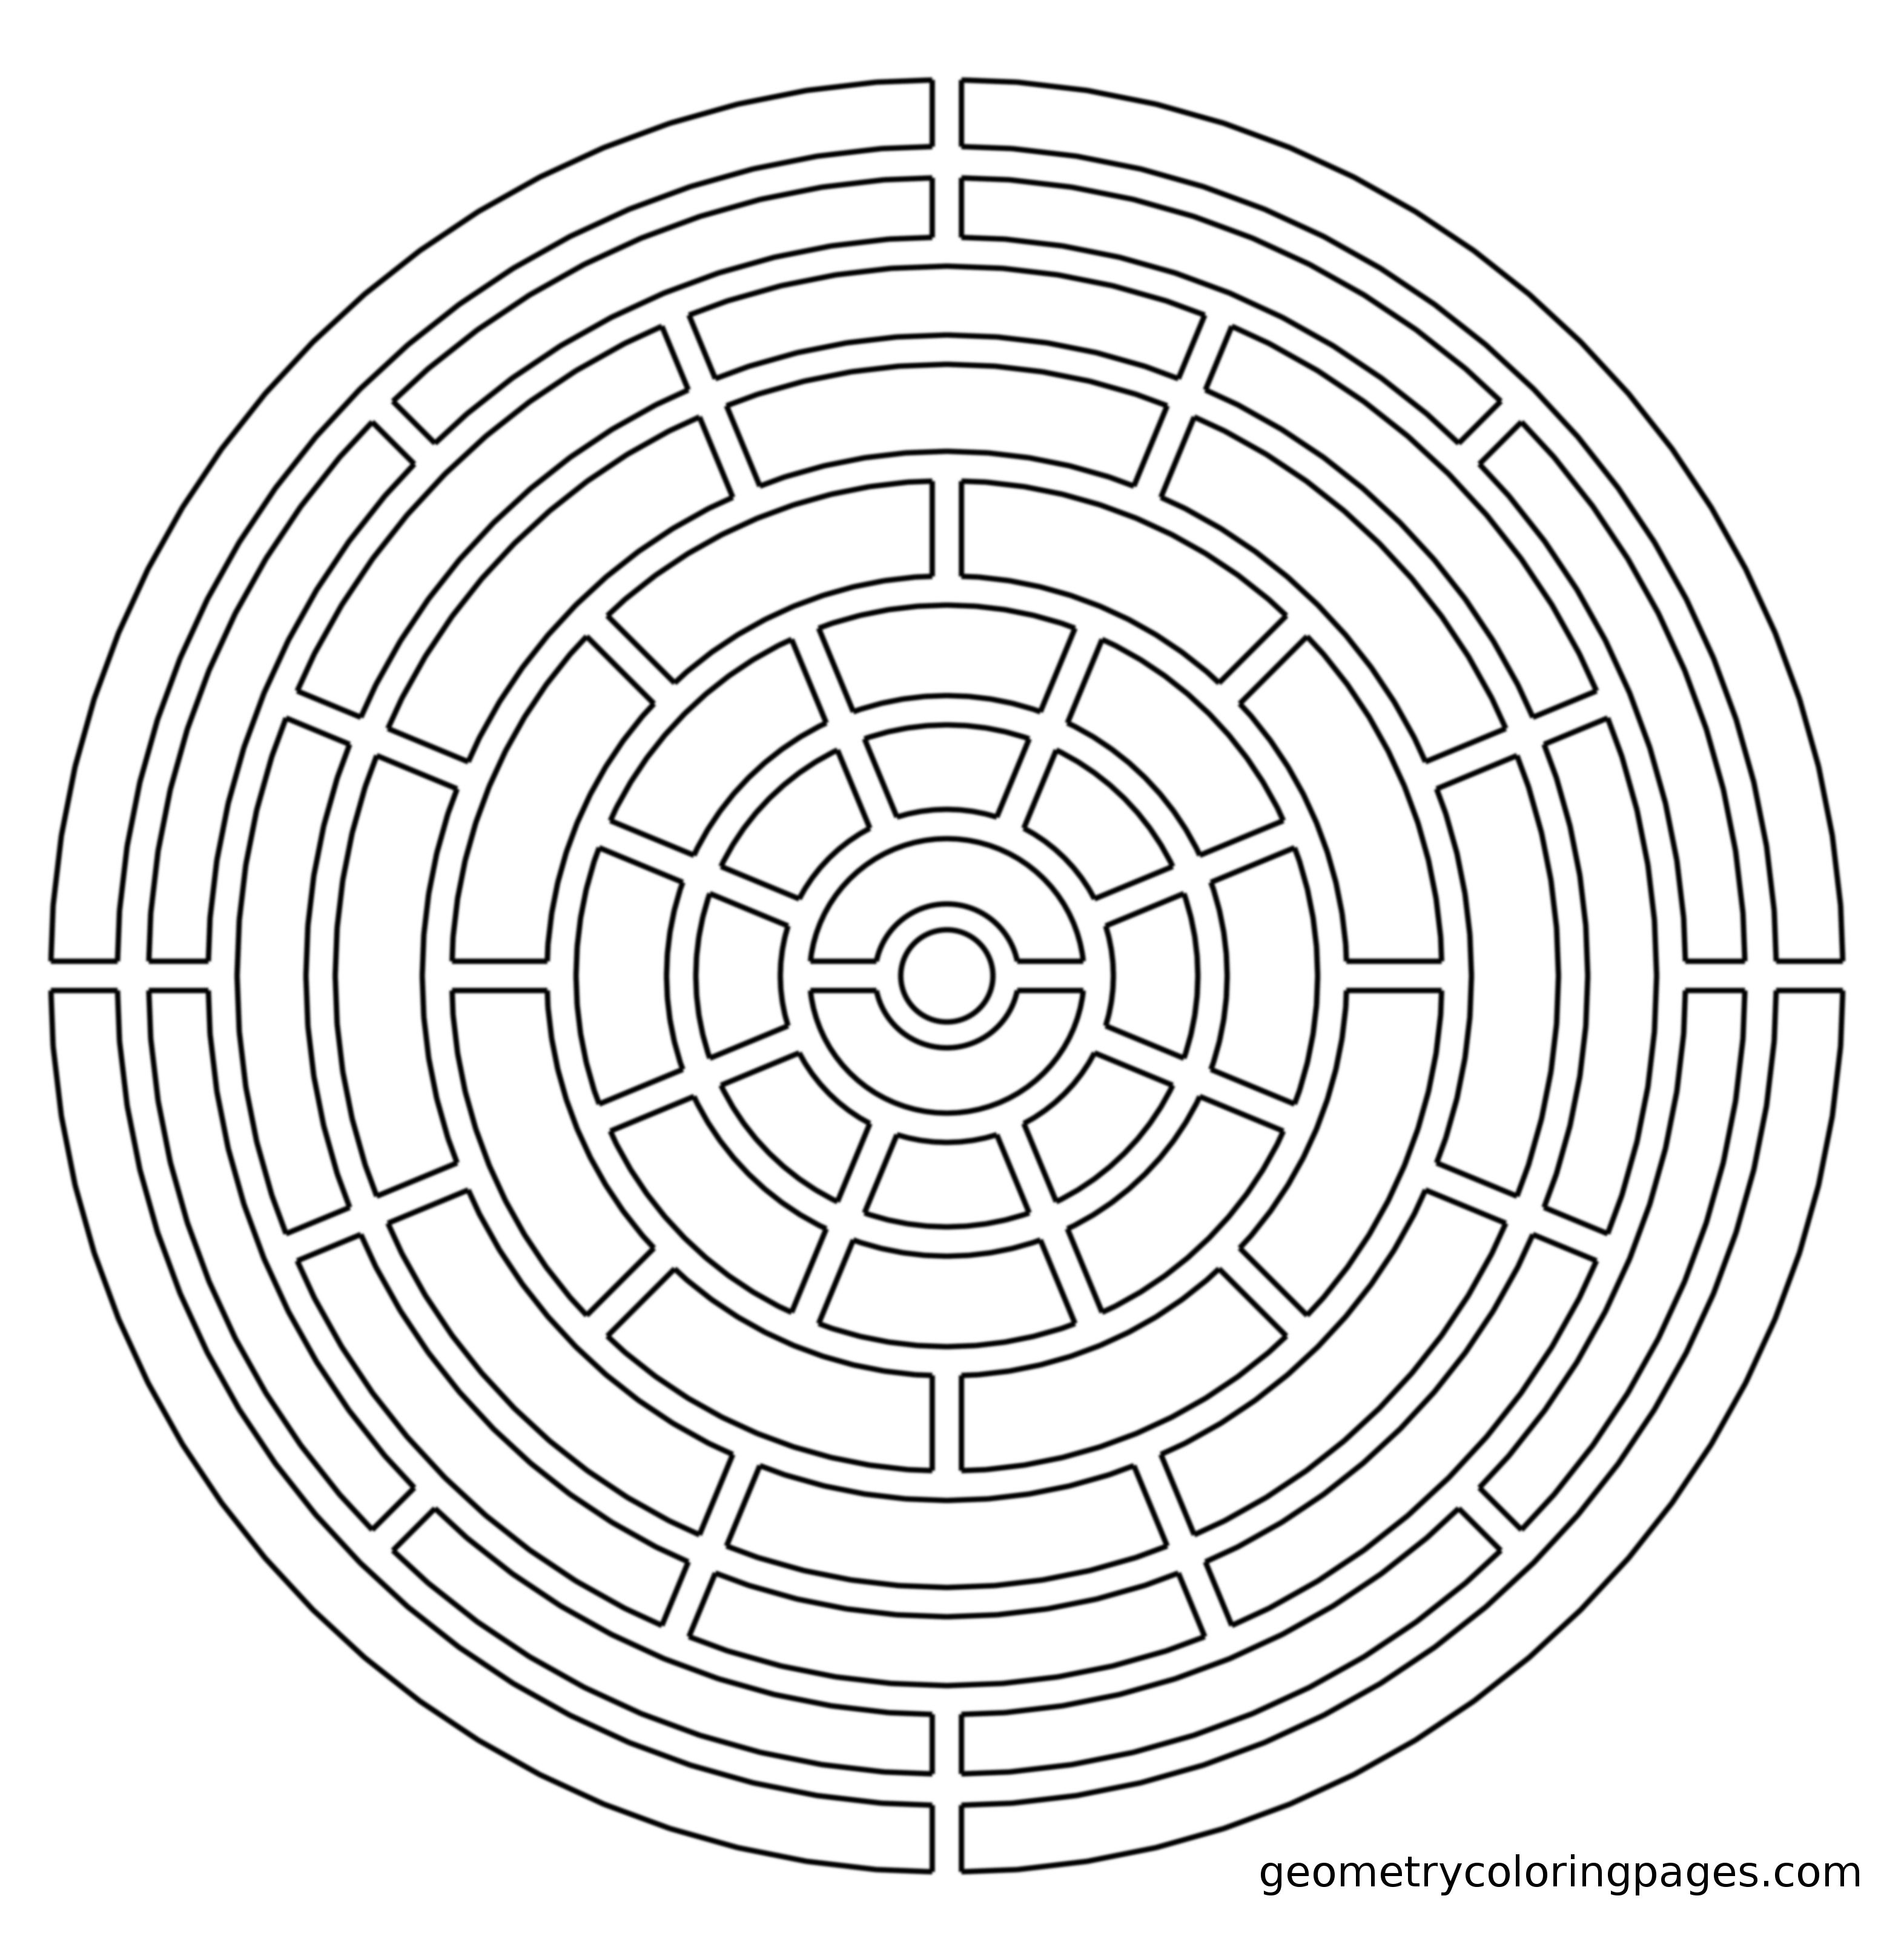 Geometry Coloring Page Slot Maze